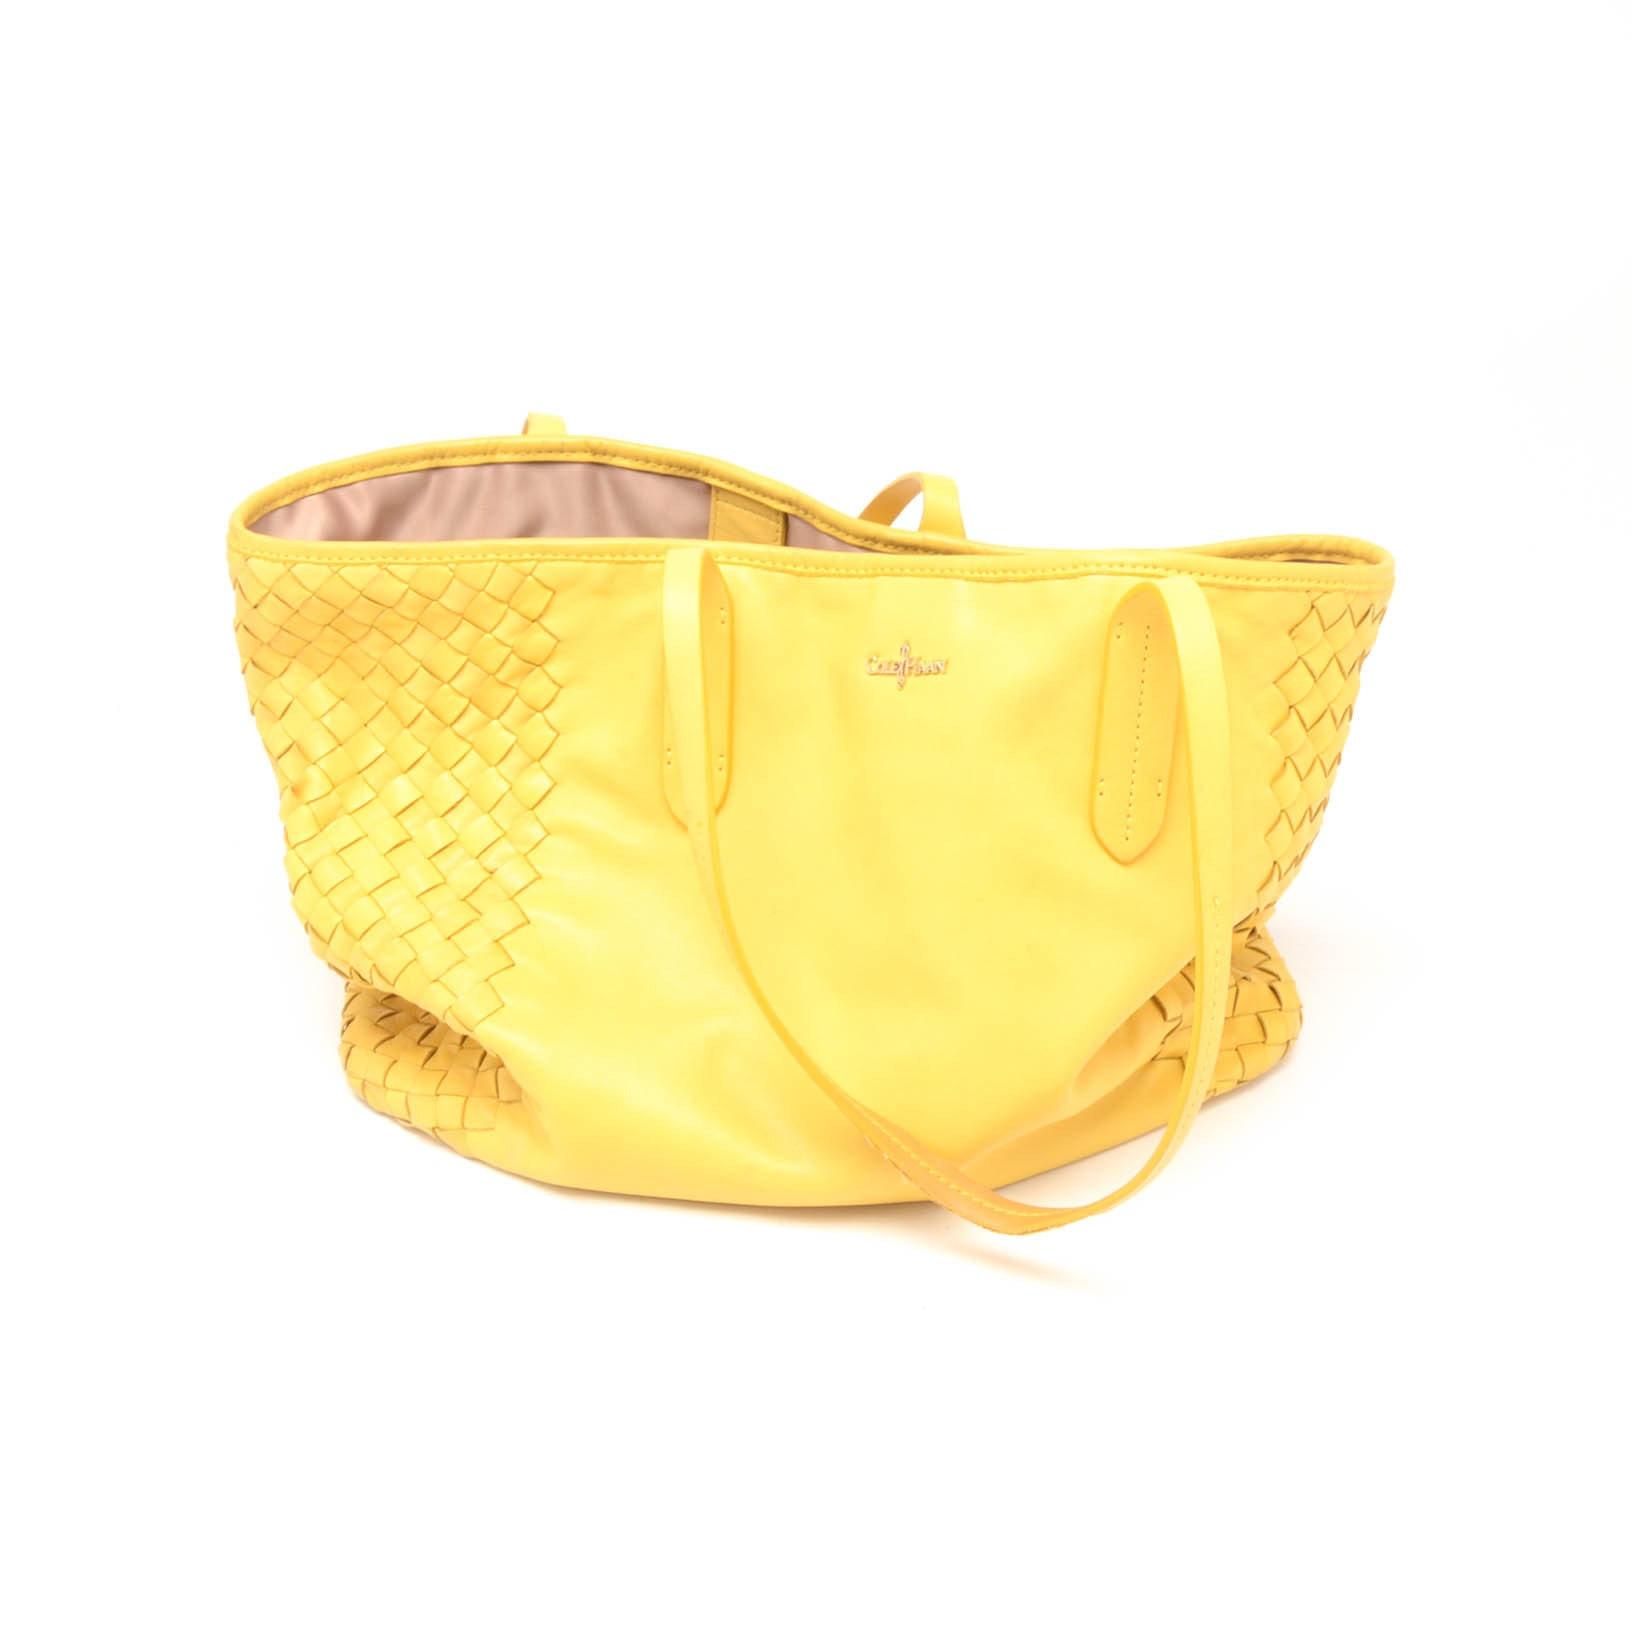 Cole Haan Woven Yellow Leather Tote